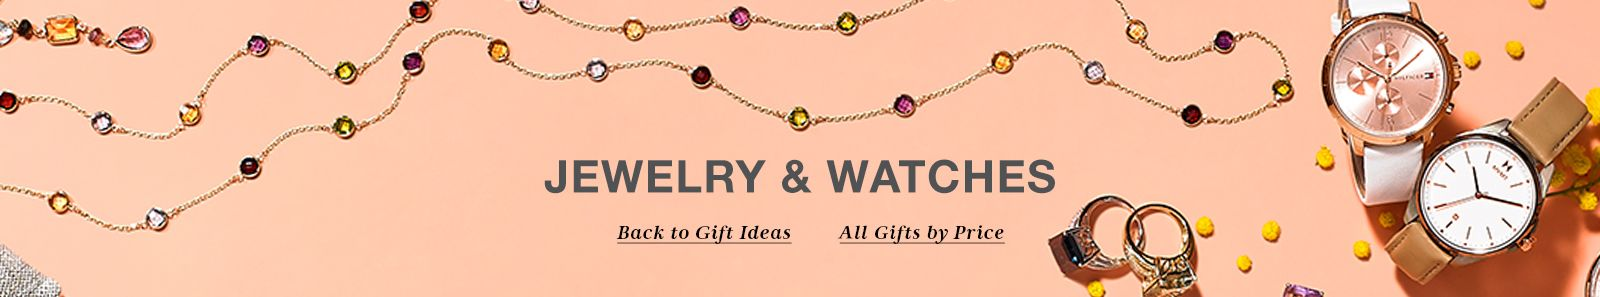 Jewelry and Watches, Back to Gift Ideas, All Gifts by Price